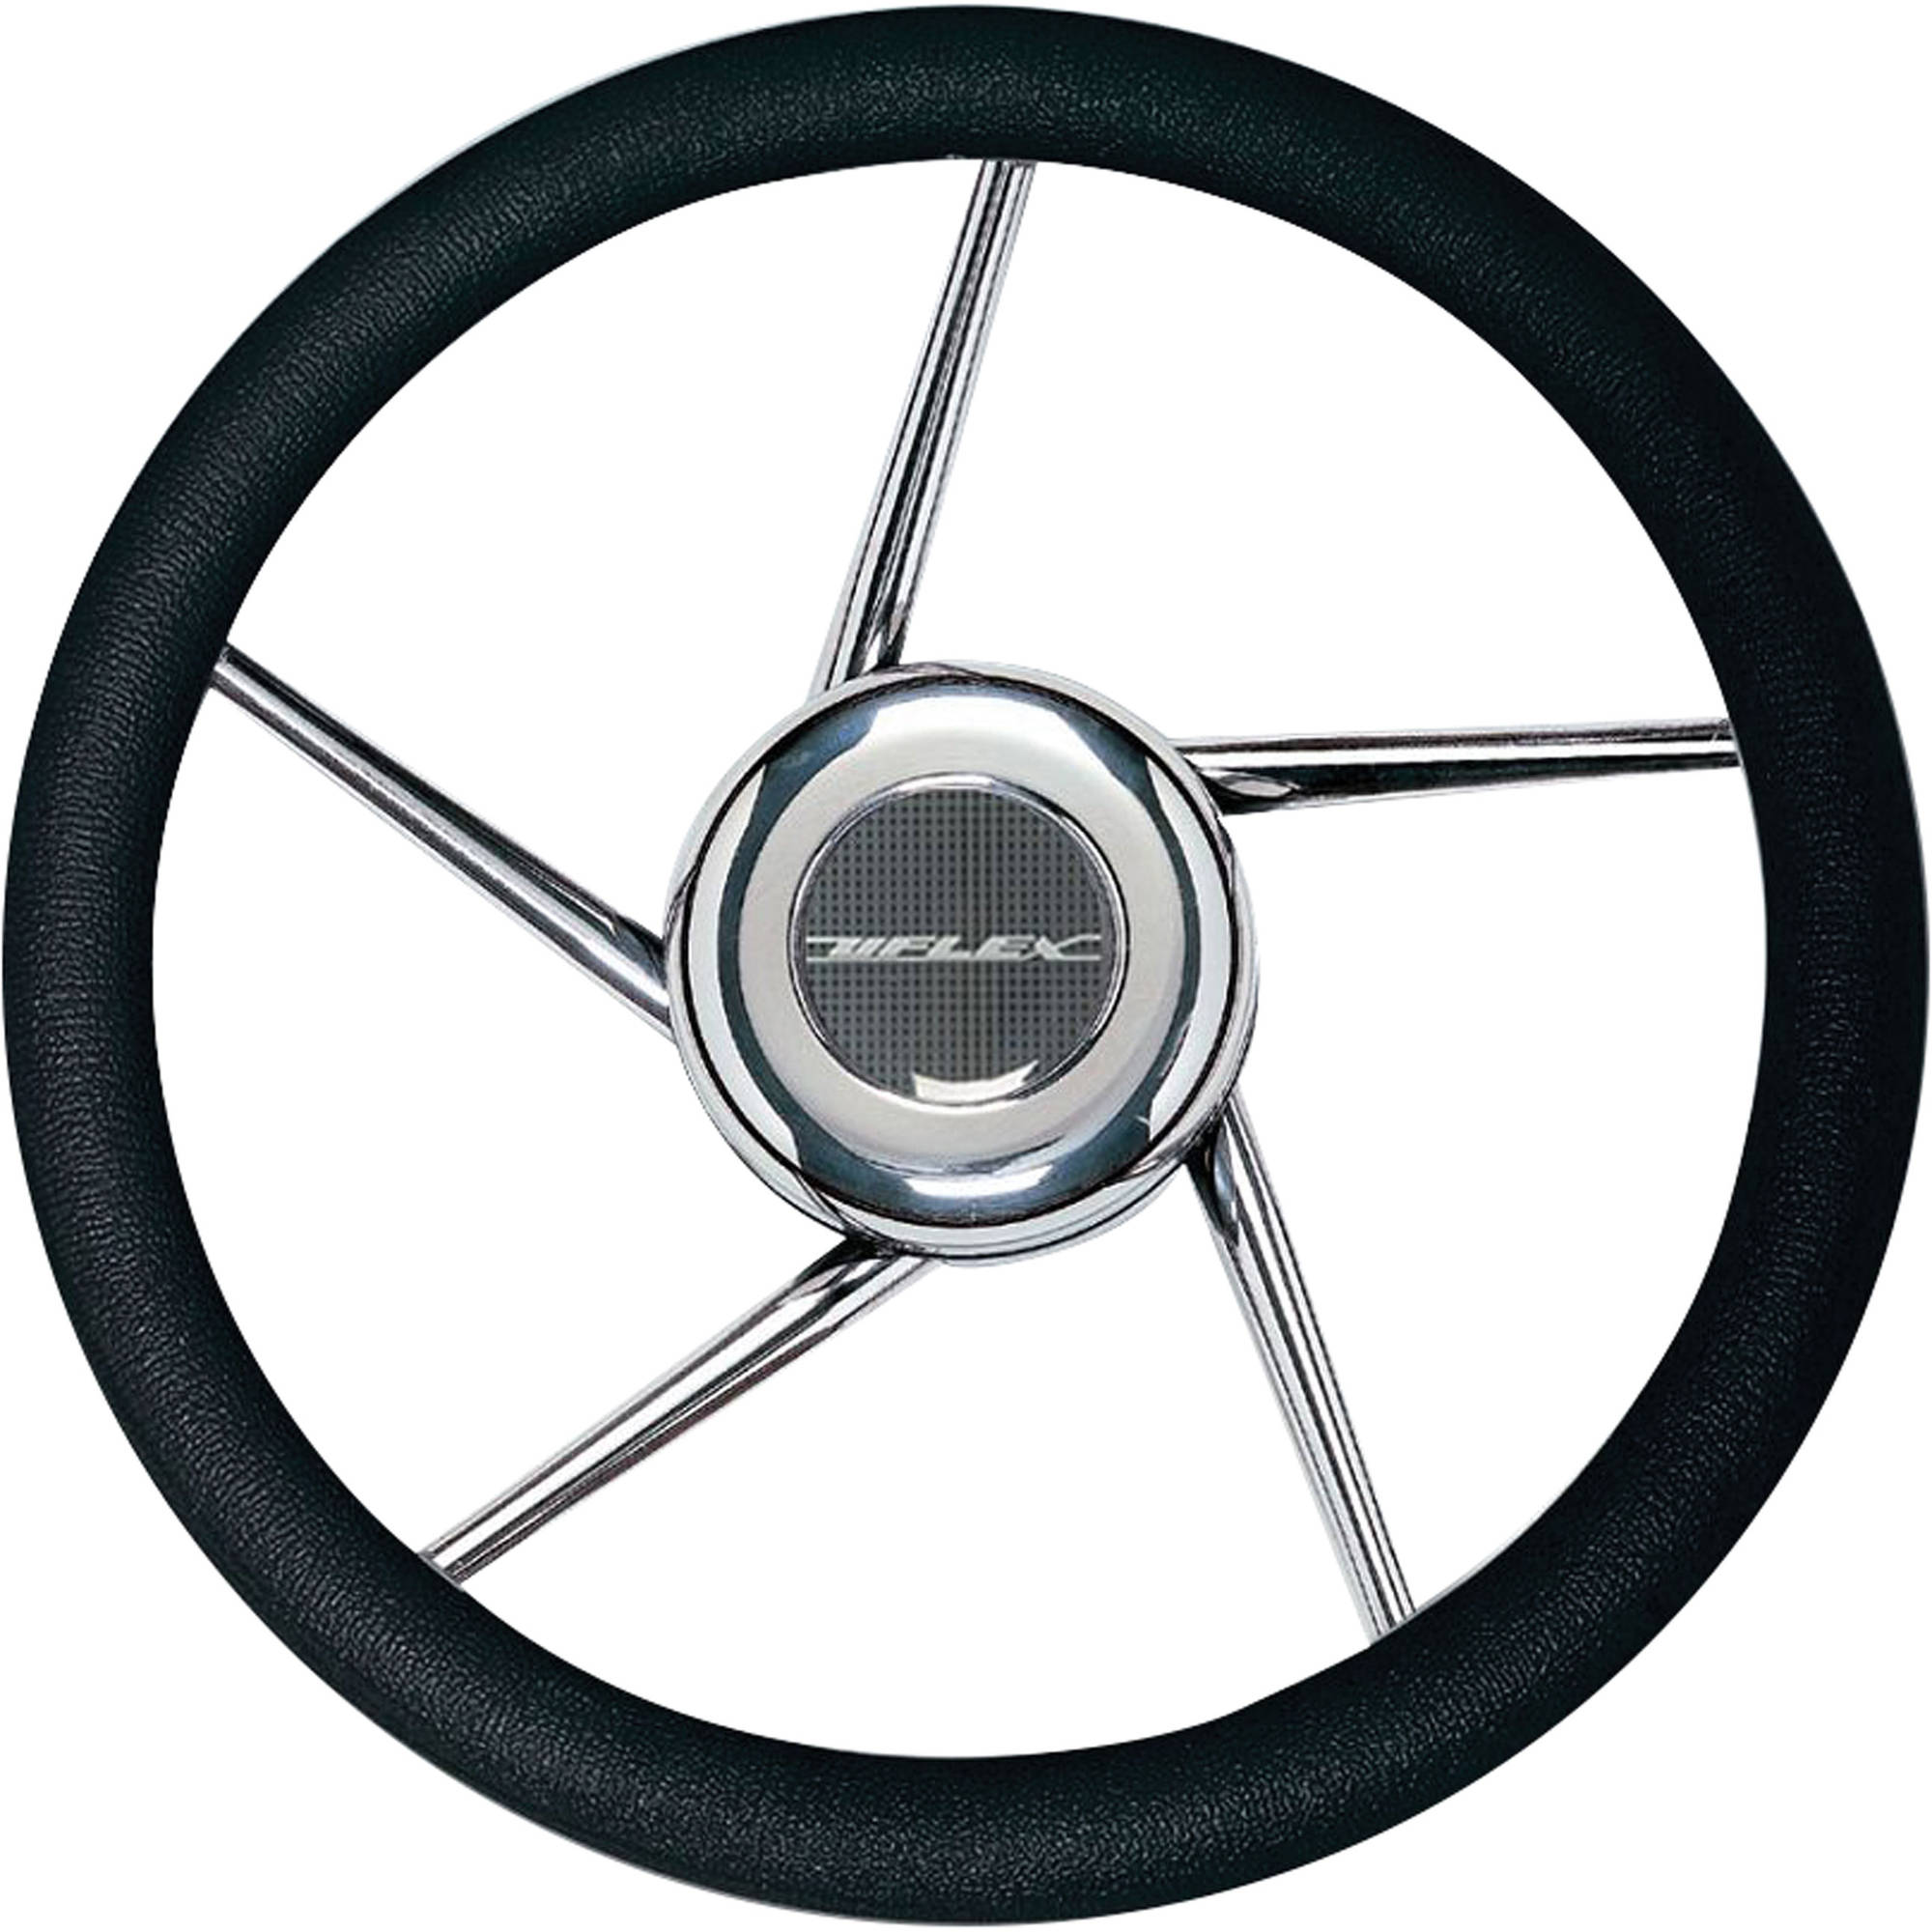 Uflex 41687Z V01 Non-Magnetic Stainless Steel Steering Wheel, Black